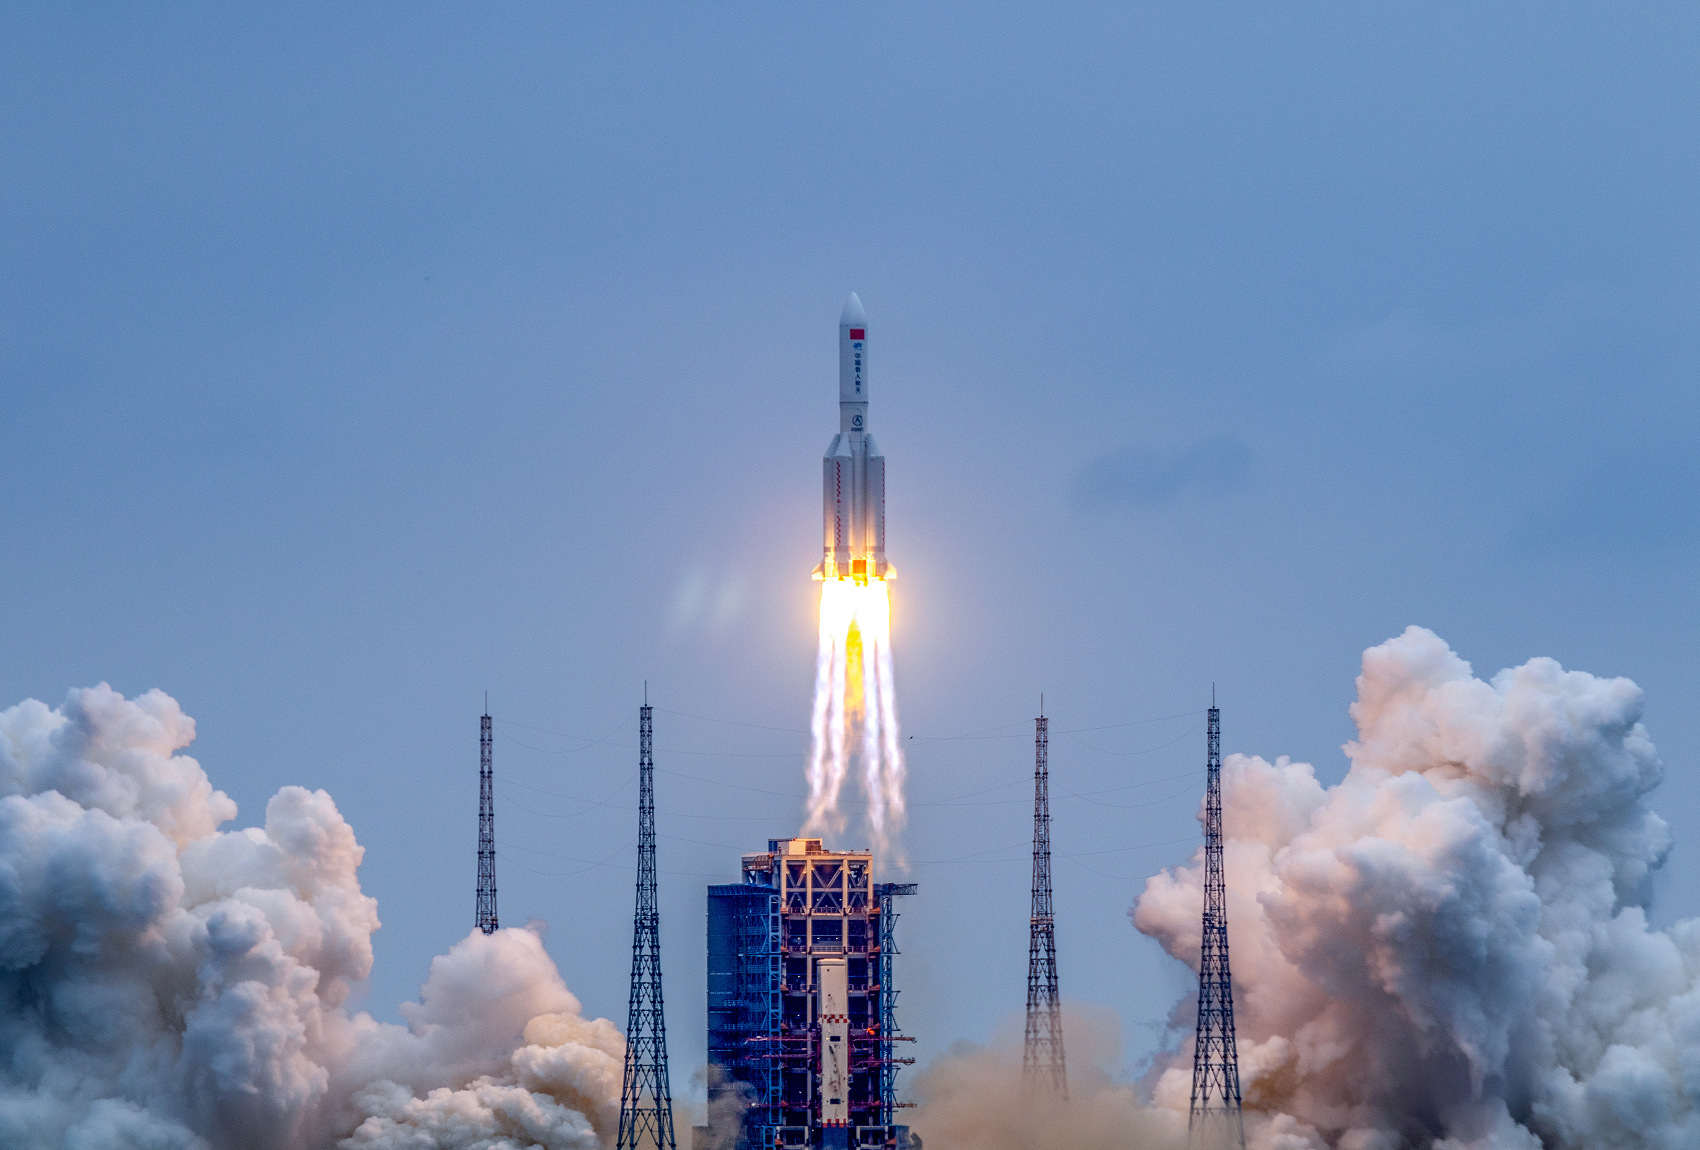 Tianhe, core module of China's first space station, will prepare to meet cargo spacecraft after tests